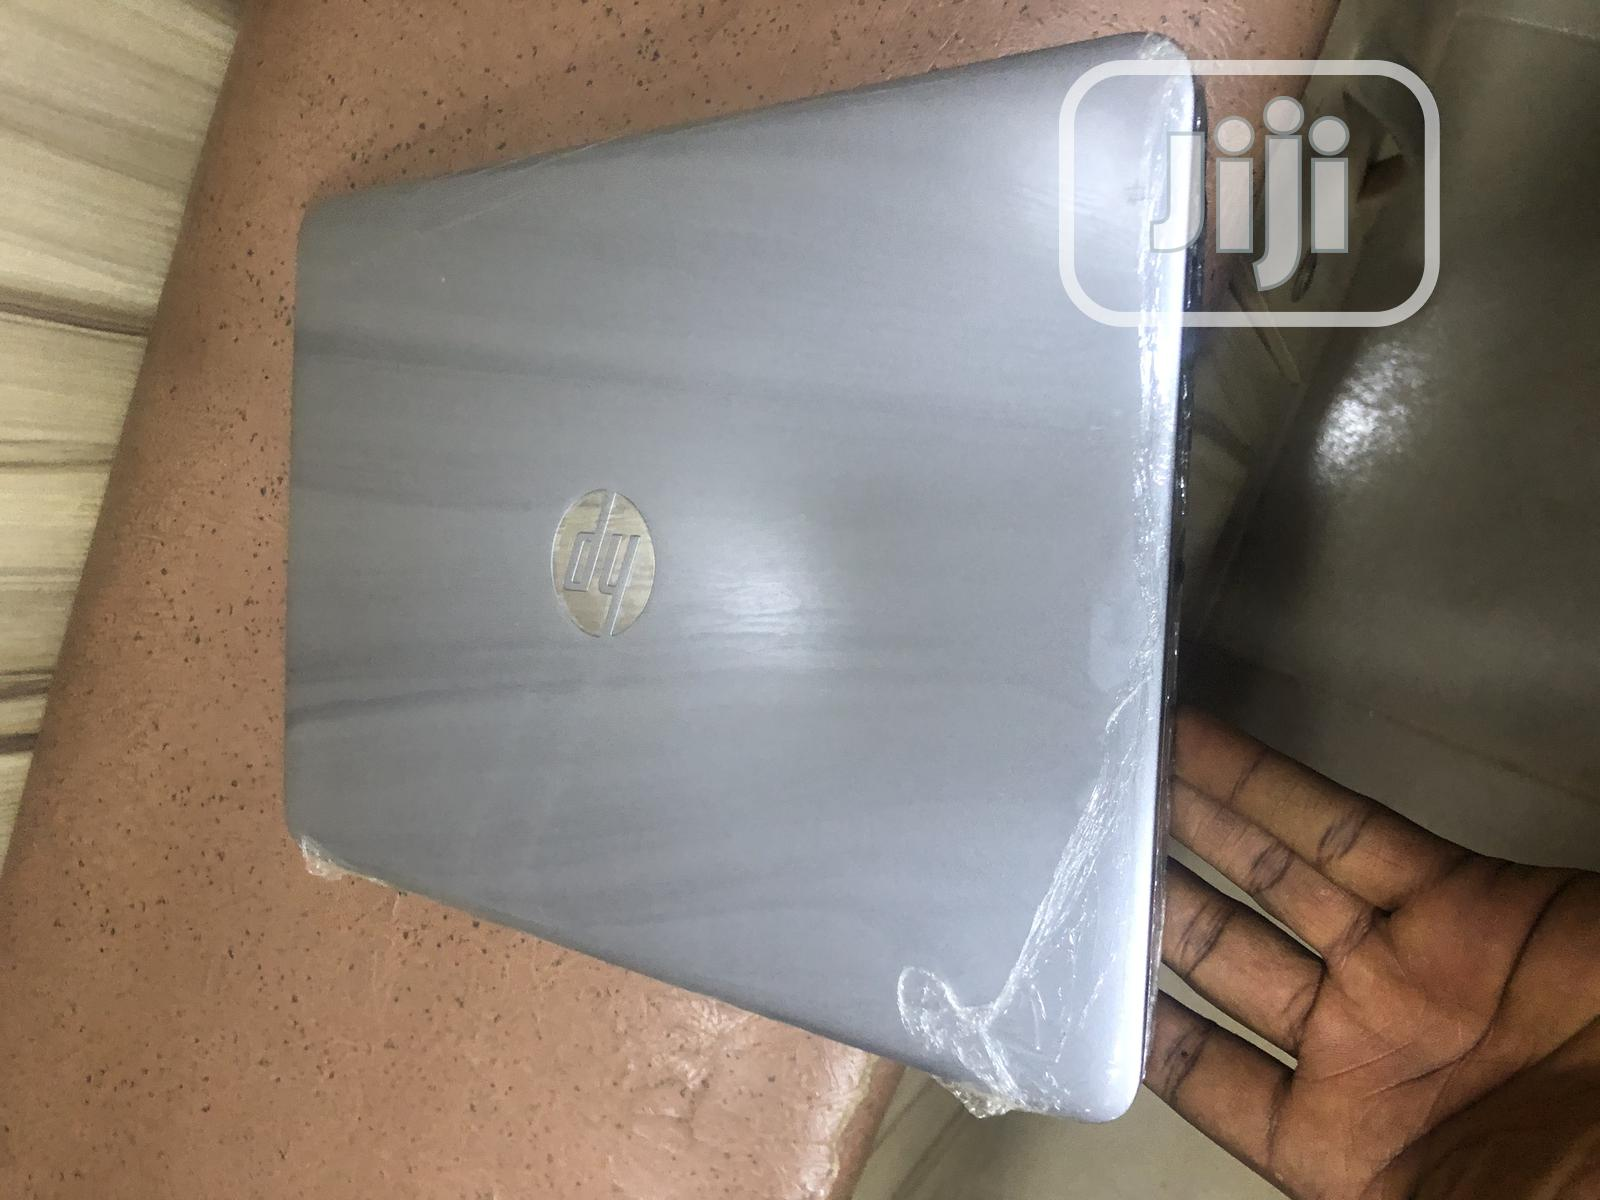 Laptop HP EliteBook 840 G3 8GB Intel Core i5 HDD 500GB | Laptops & Computers for sale in Gwarinpa, Abuja (FCT) State, Nigeria